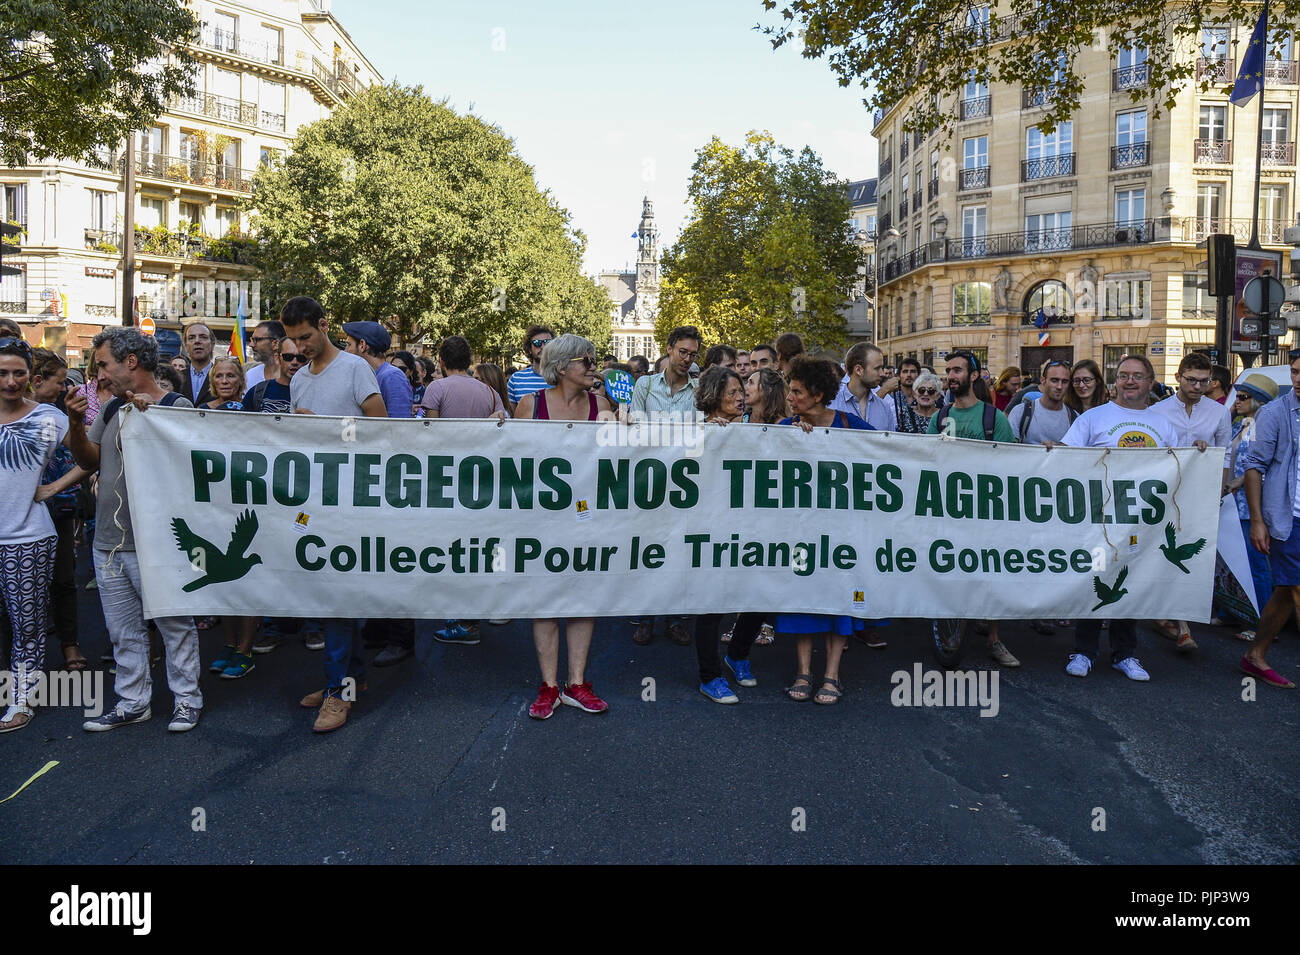 Paris, Ile de France, France. 8th Sep, 2018. Protesters seen holding a banner walking during the protest.Thousands of people took part in a walk protesting demanding leaders to take action about the climate change in Paris, France. Credit: Charles Salle/SOPA Images/ZUMA Wire/Alamy Live News Stock Photo